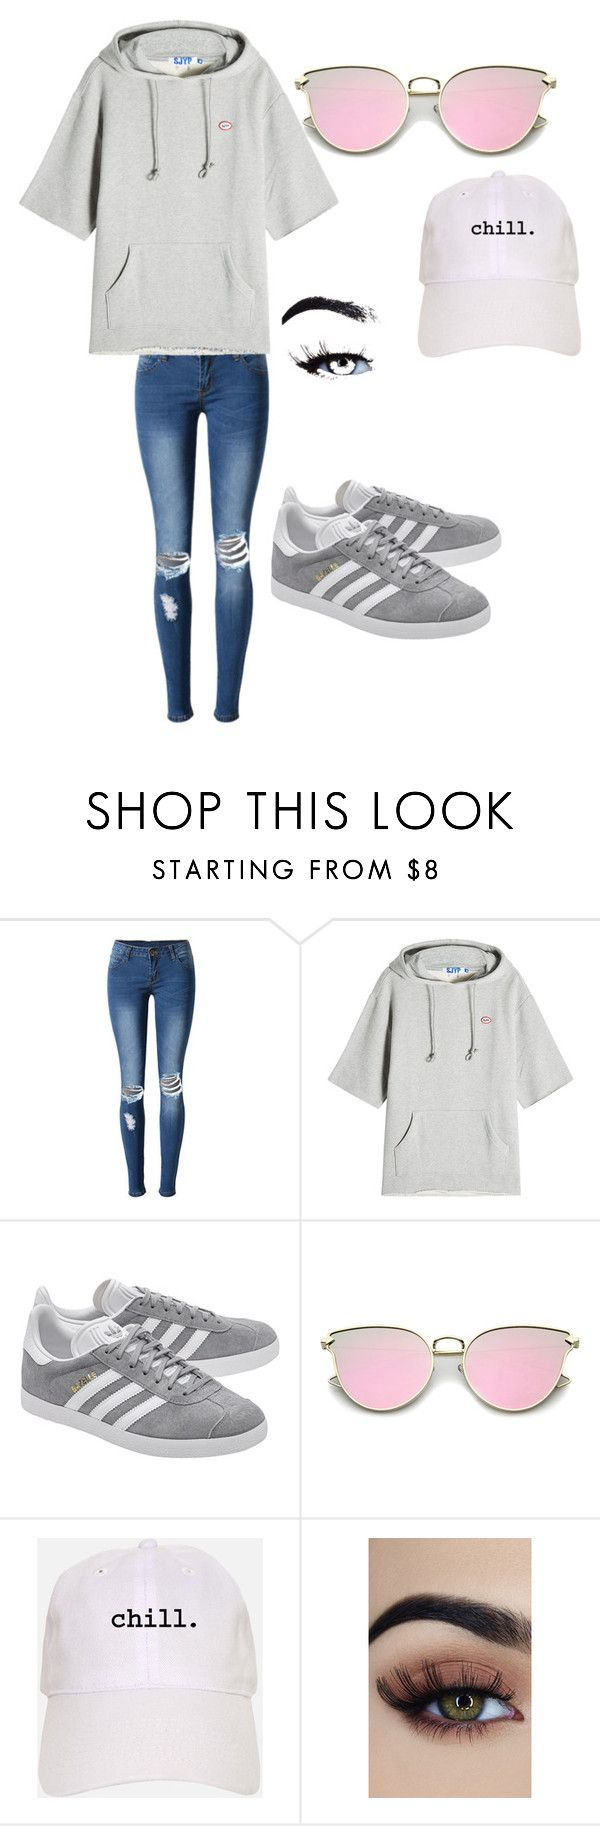 """Untitled #36"" by moriartylauren on Polyvore featuring WithChic, SJYP and adidas Originals"